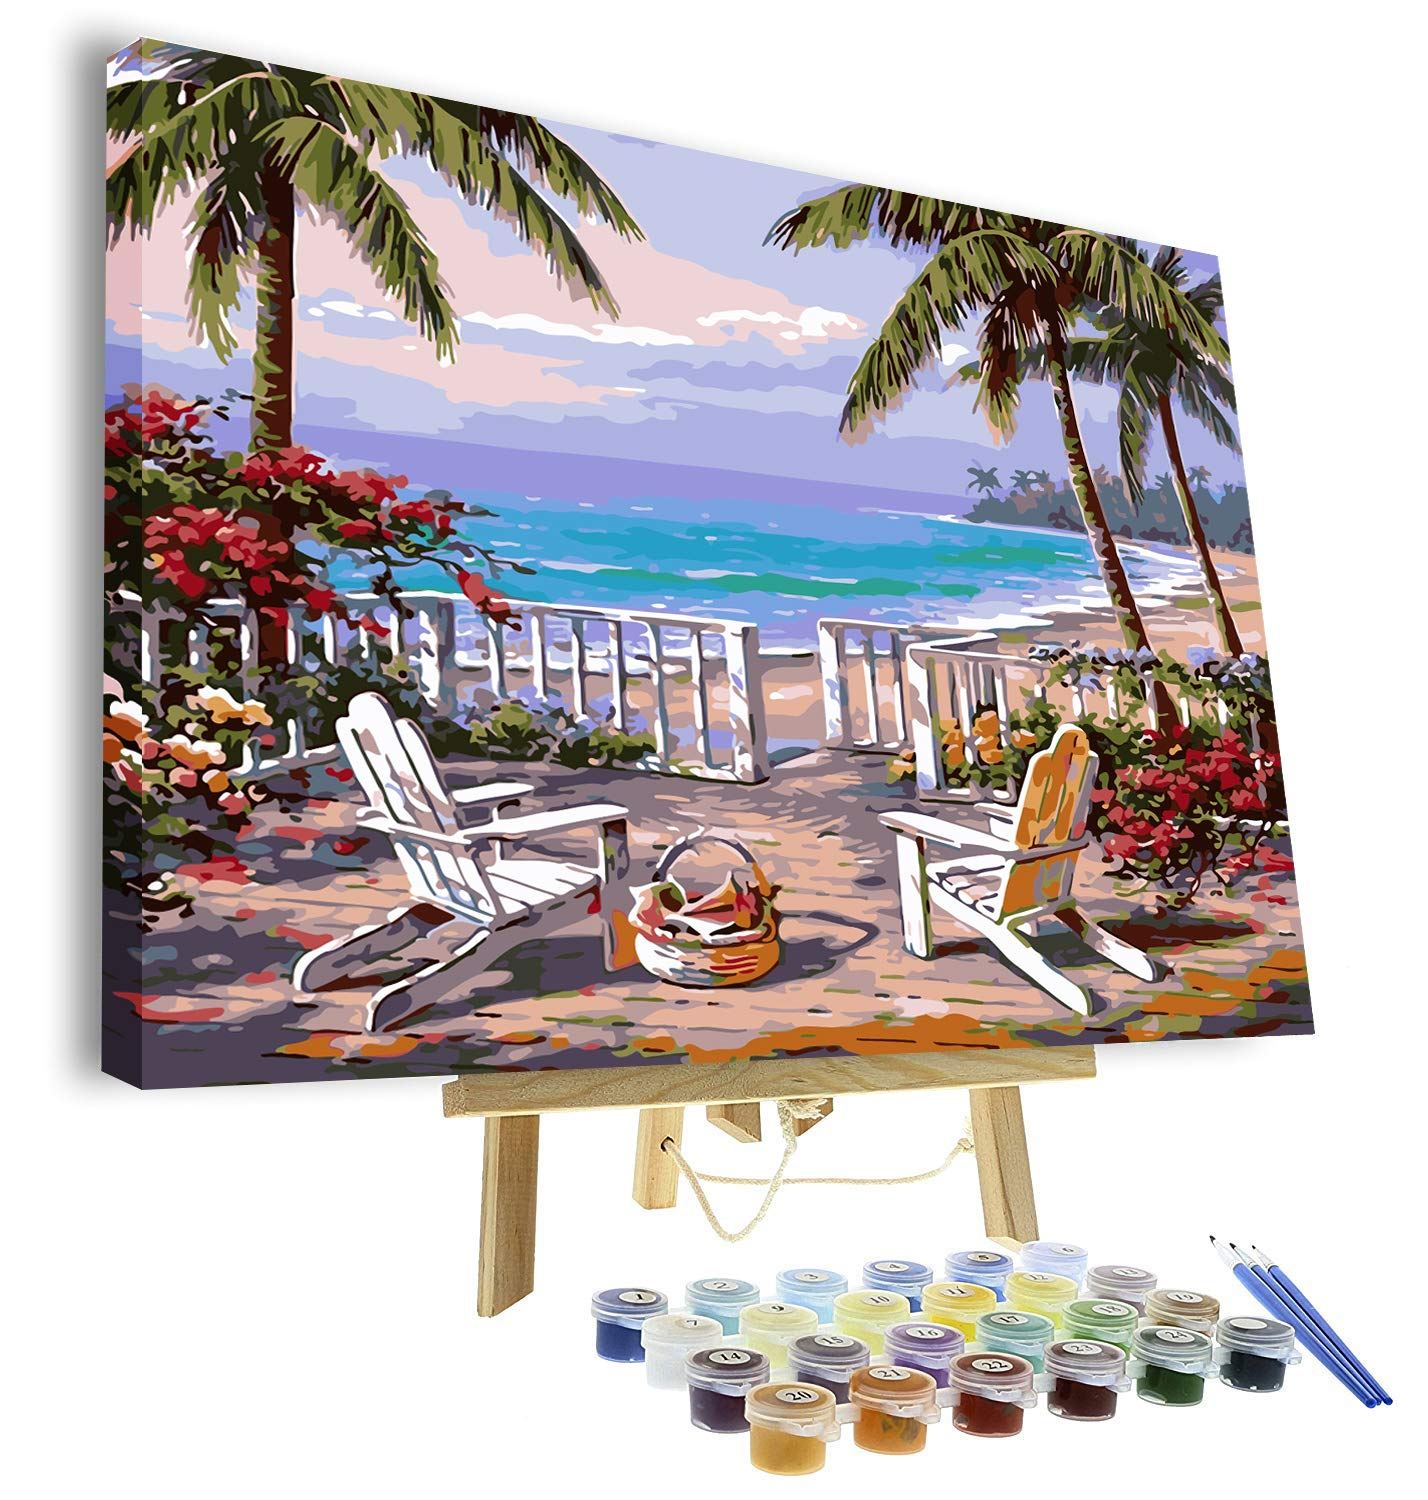 VIGEIYA DIY Paint by Numbers for Adults Include Framed Canvas and Wooden Easel with Brushes and Acrylic Pigment 15.7x19.6inch (Beach) by VIGEIYA